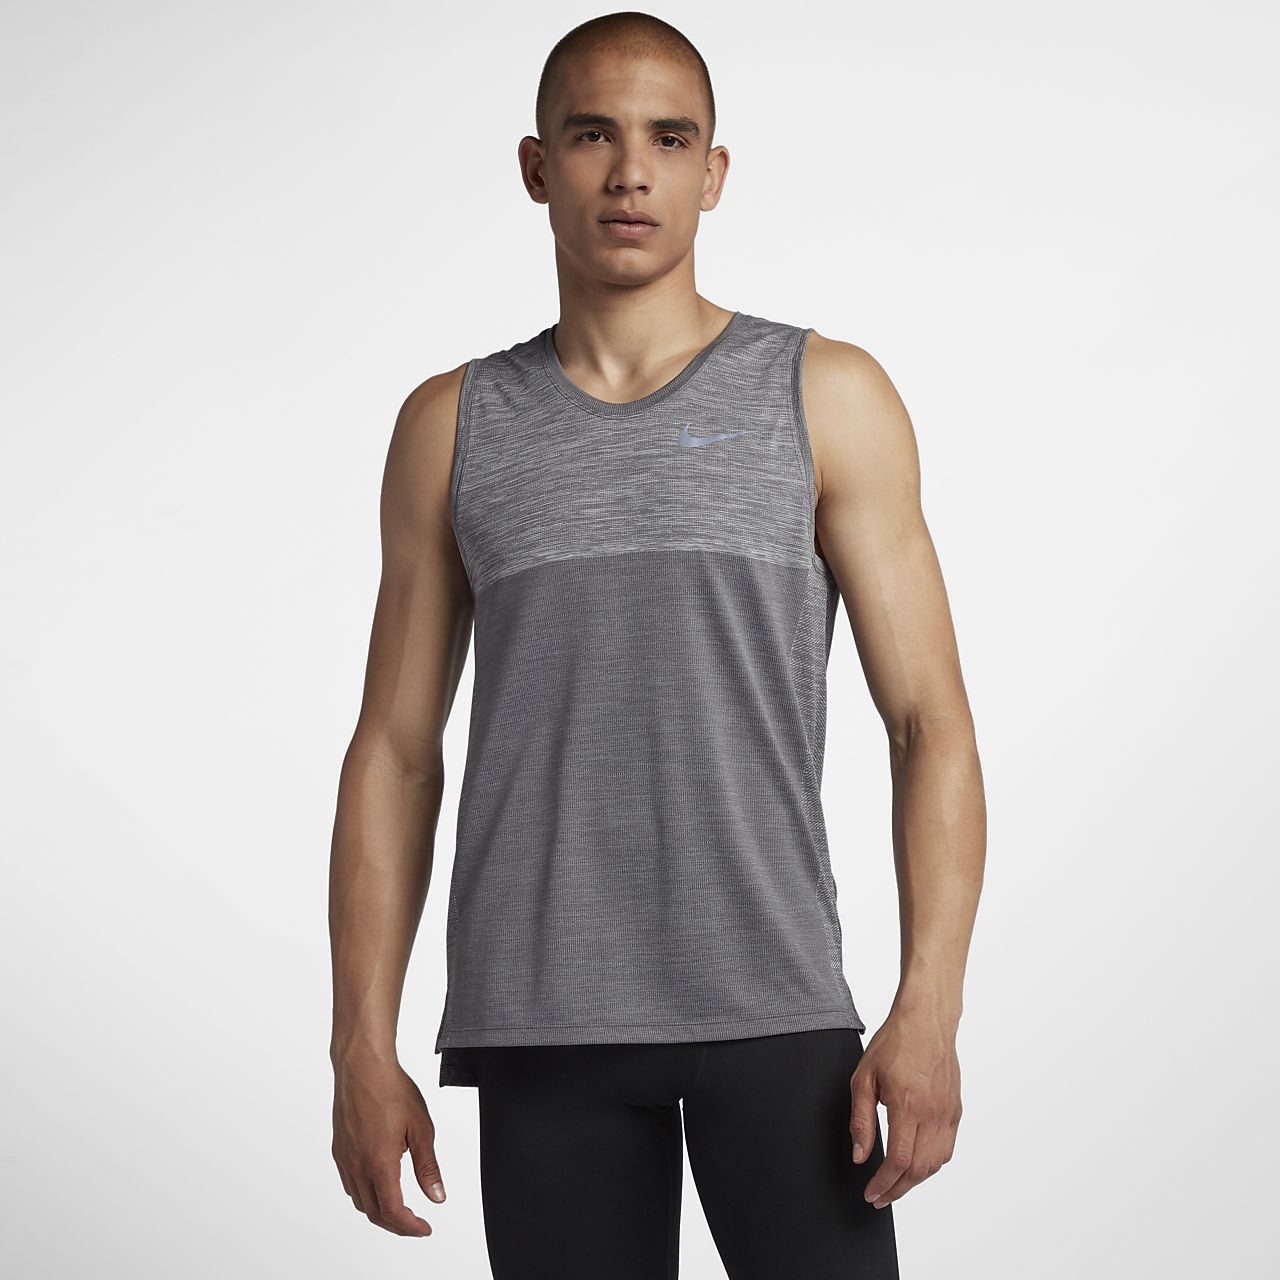 Nike Dri-FIT Medalist Men's Running Tank